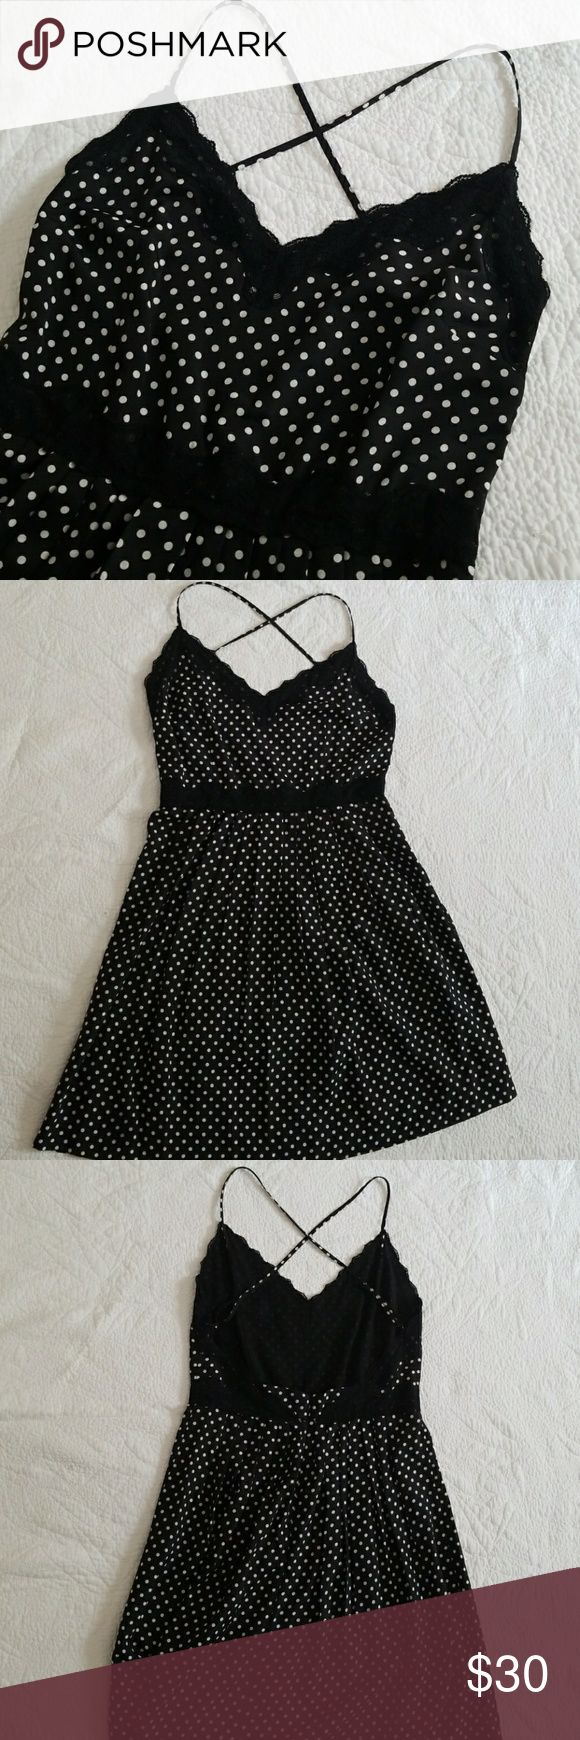 NWT Betsey Johnson Polka Dot Dress Adorable, flirty dress, brand new with tags! Purchased this on a whim at the Betsey Johnson store in San Francisco before it closed, then never wore it! 😕 Dress has empire waist with lace detailing at bust and waist, and pleating in the front and back. Spaghetti straps cross in the back.  Back is open with a hidden zipper. Fabric has silky feel and is 100% polyester. Unlined.  Smartest thing about this dress is that it has adjustable straps! Betsey Johnson…